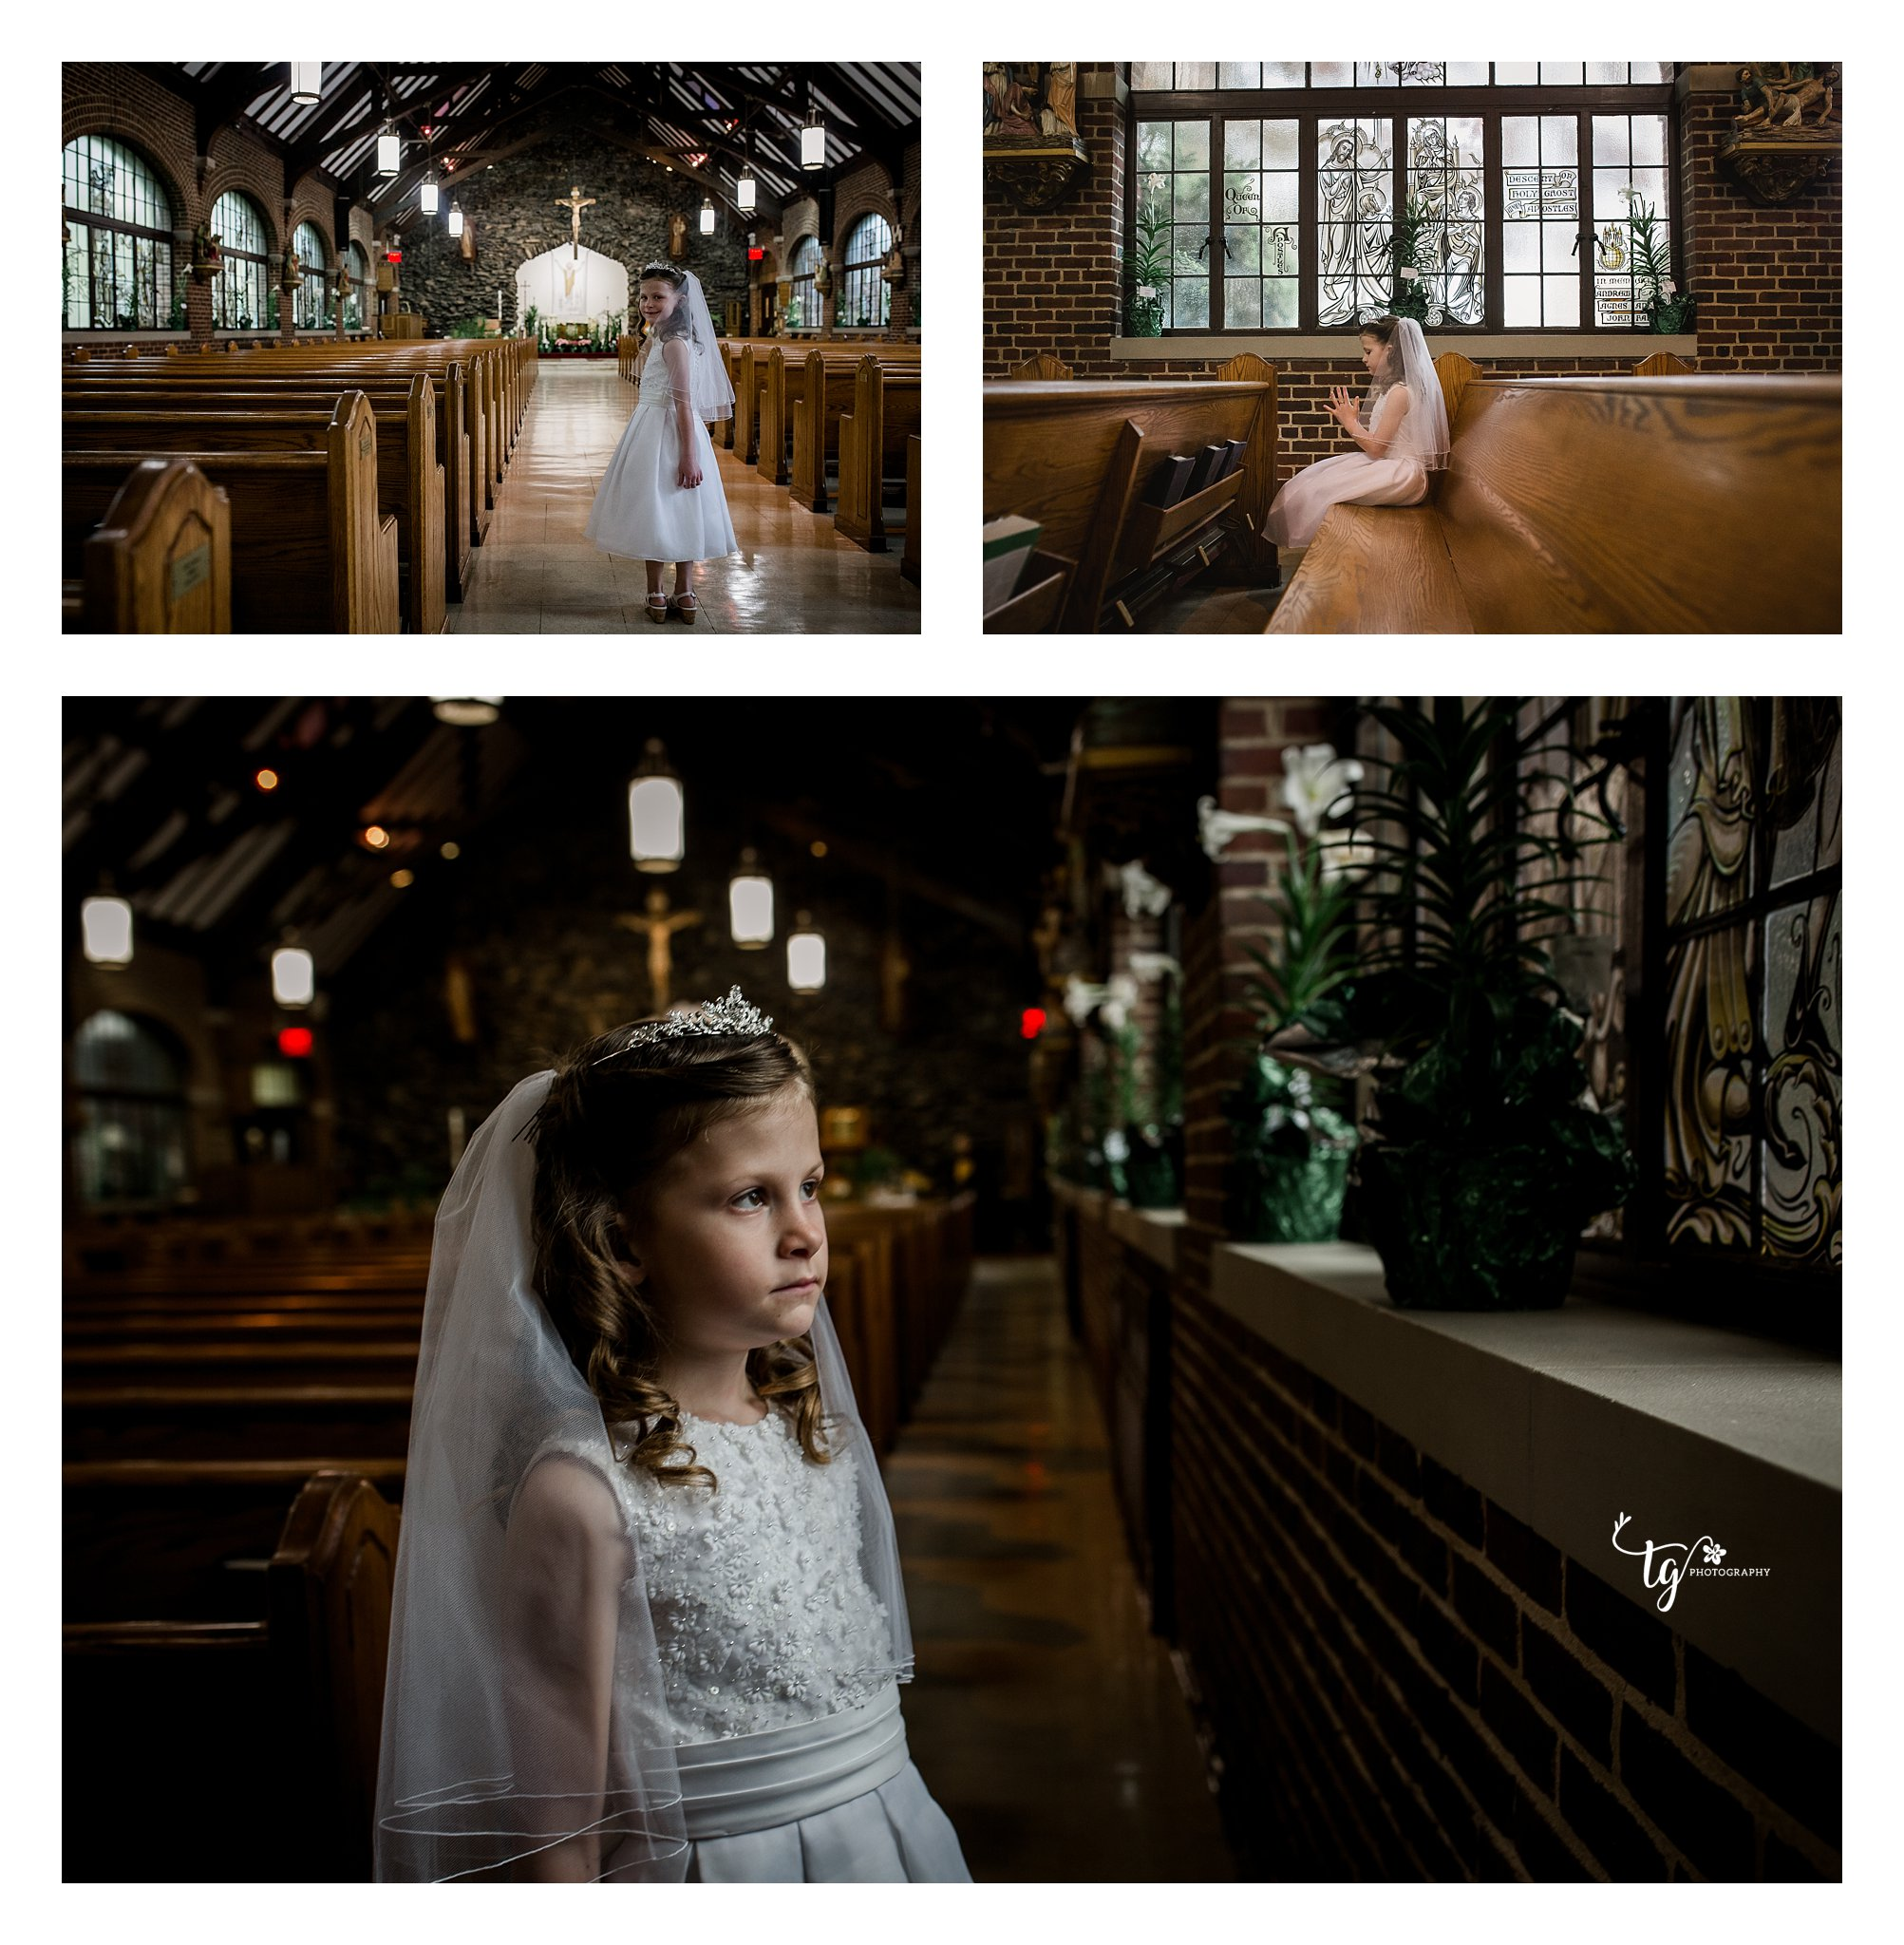 communion girl in church sitting in pews and looking out windows